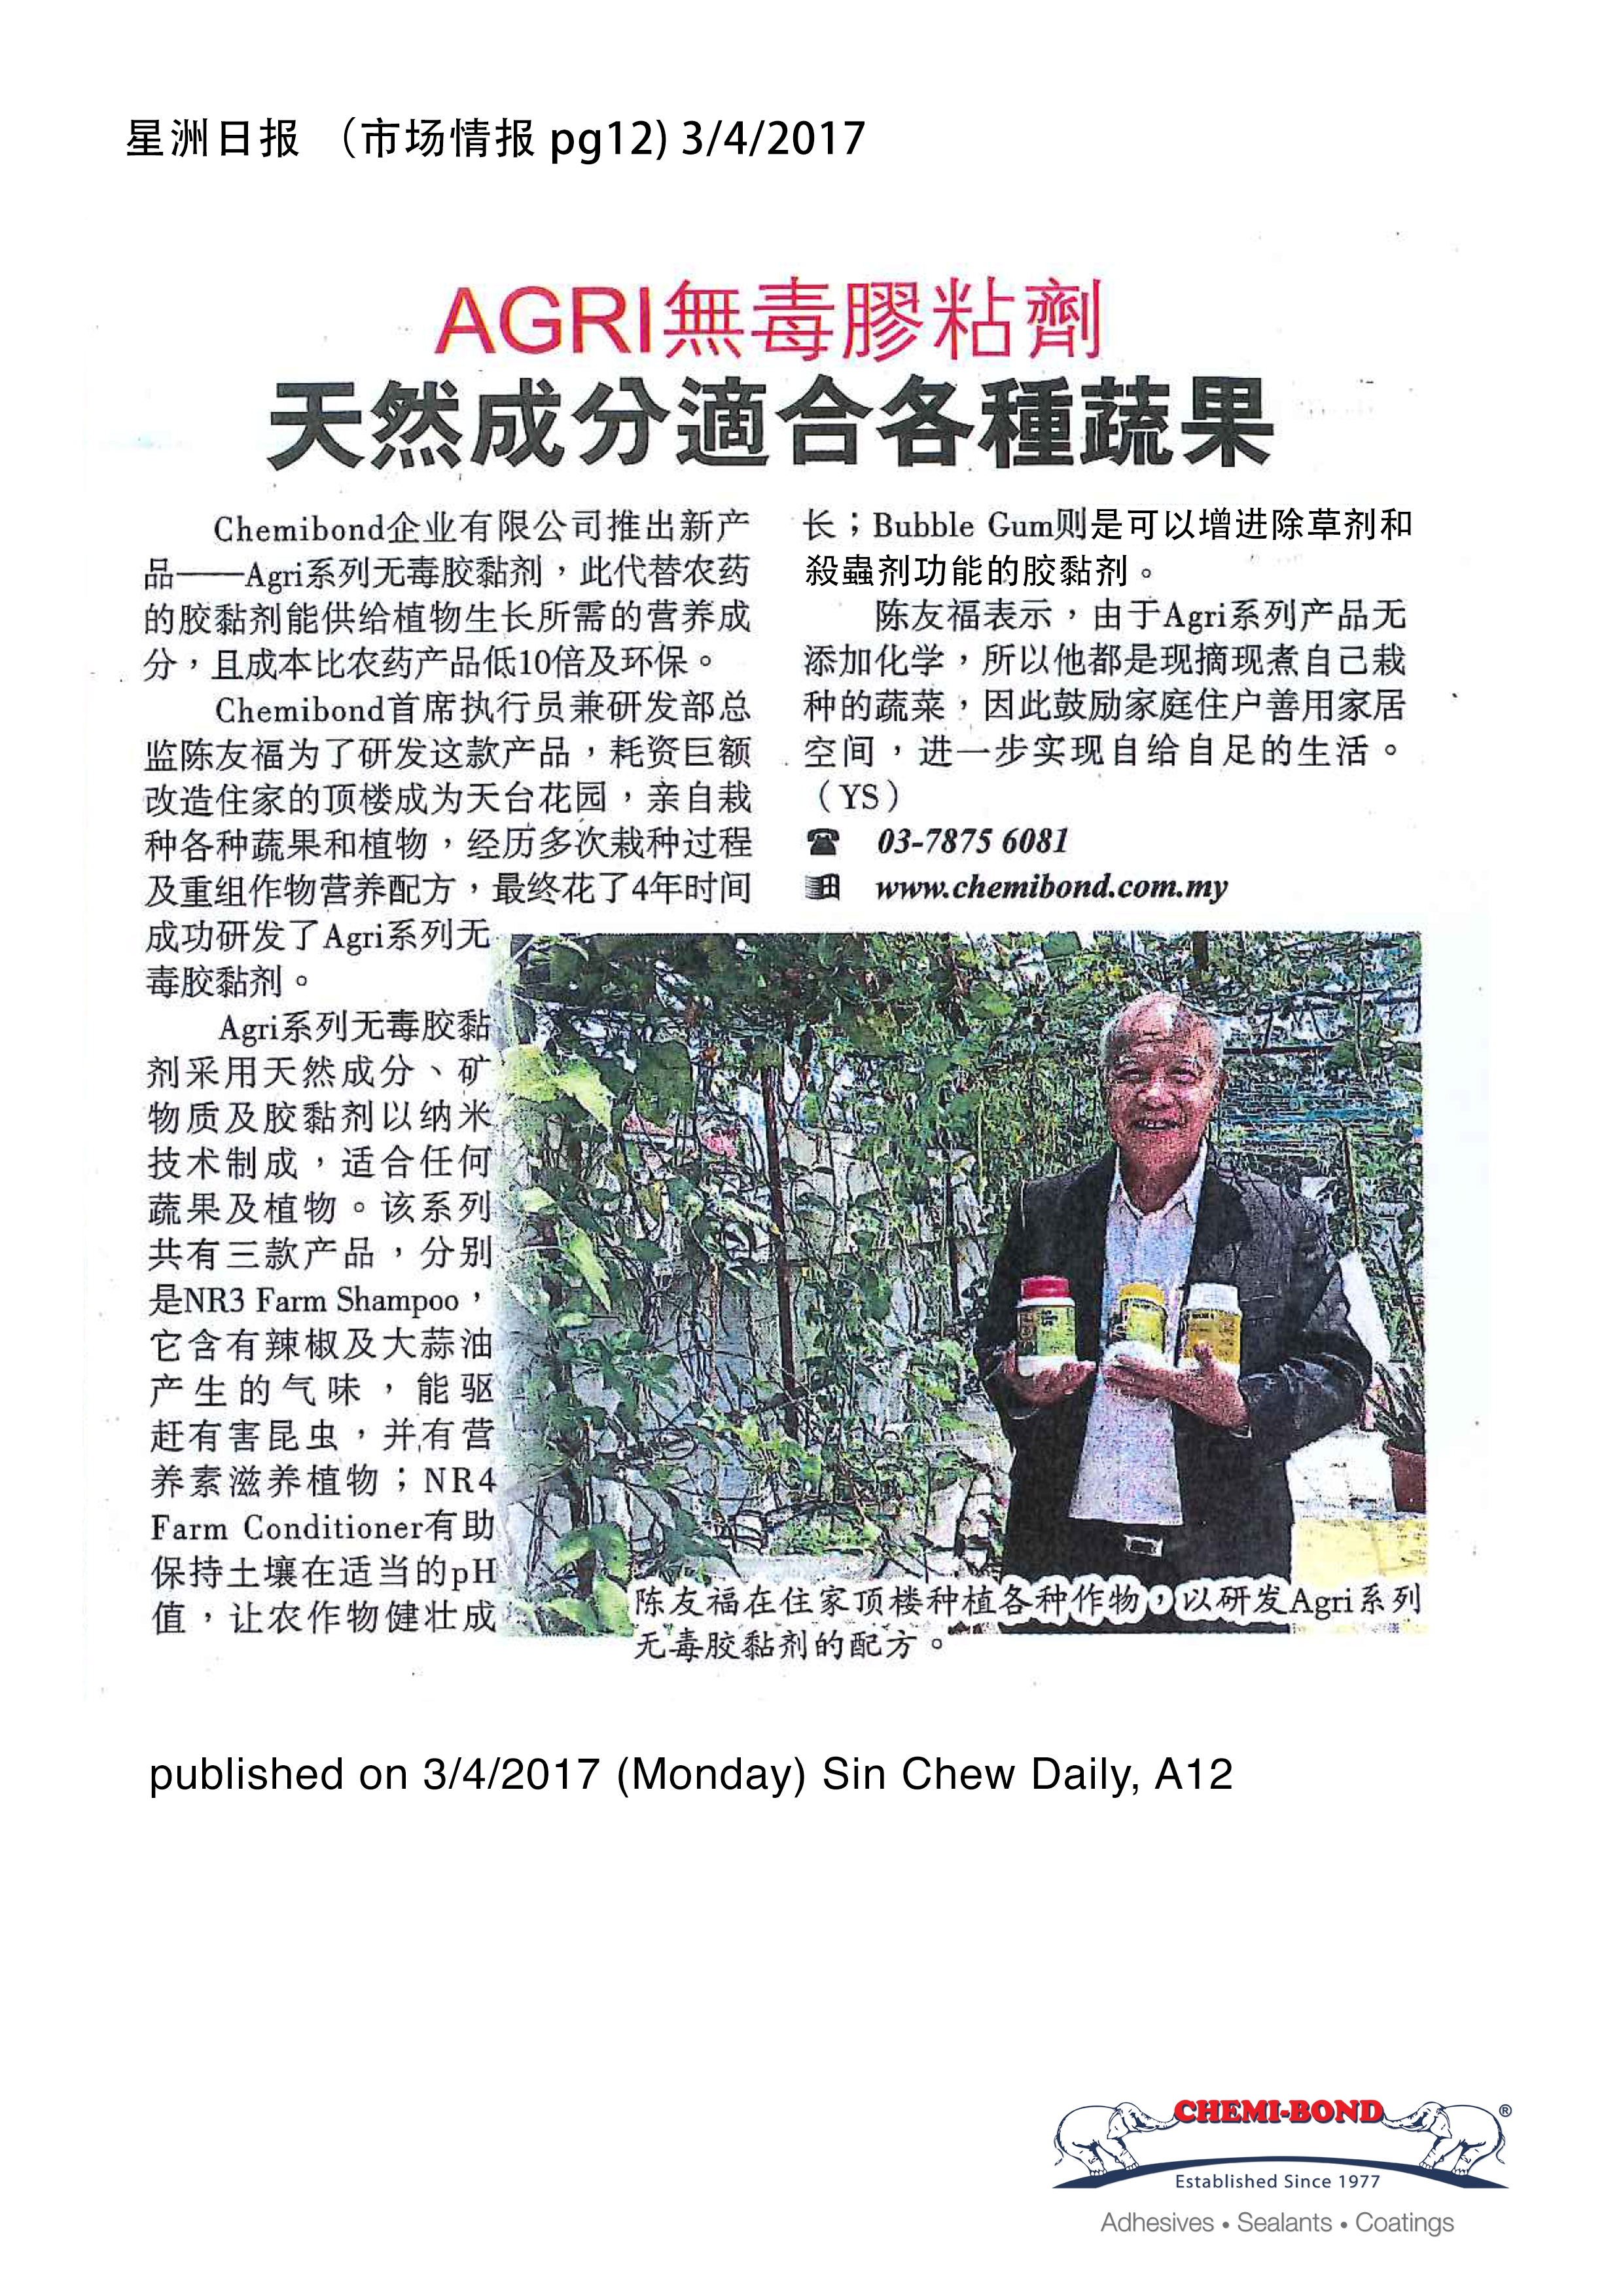 Sin Chew Daily interview on Agri Non-toxic Agriculture Adhesive Chemibond Malaysia